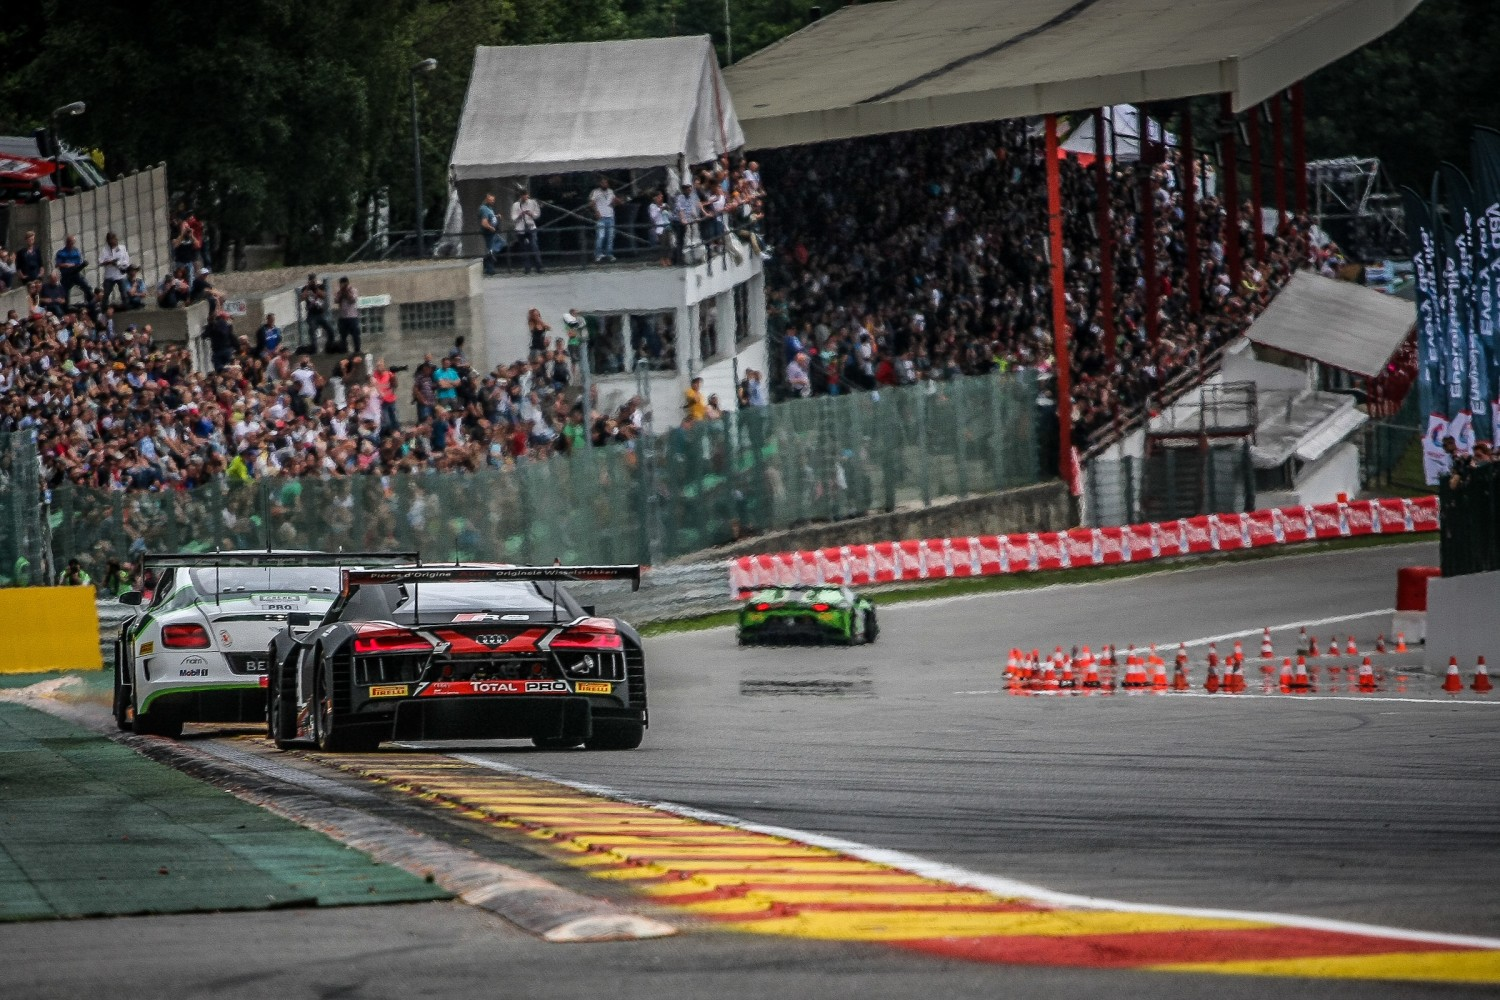 Lengthy safety car intervention shapes early hours of Total 24 Hours of Spa